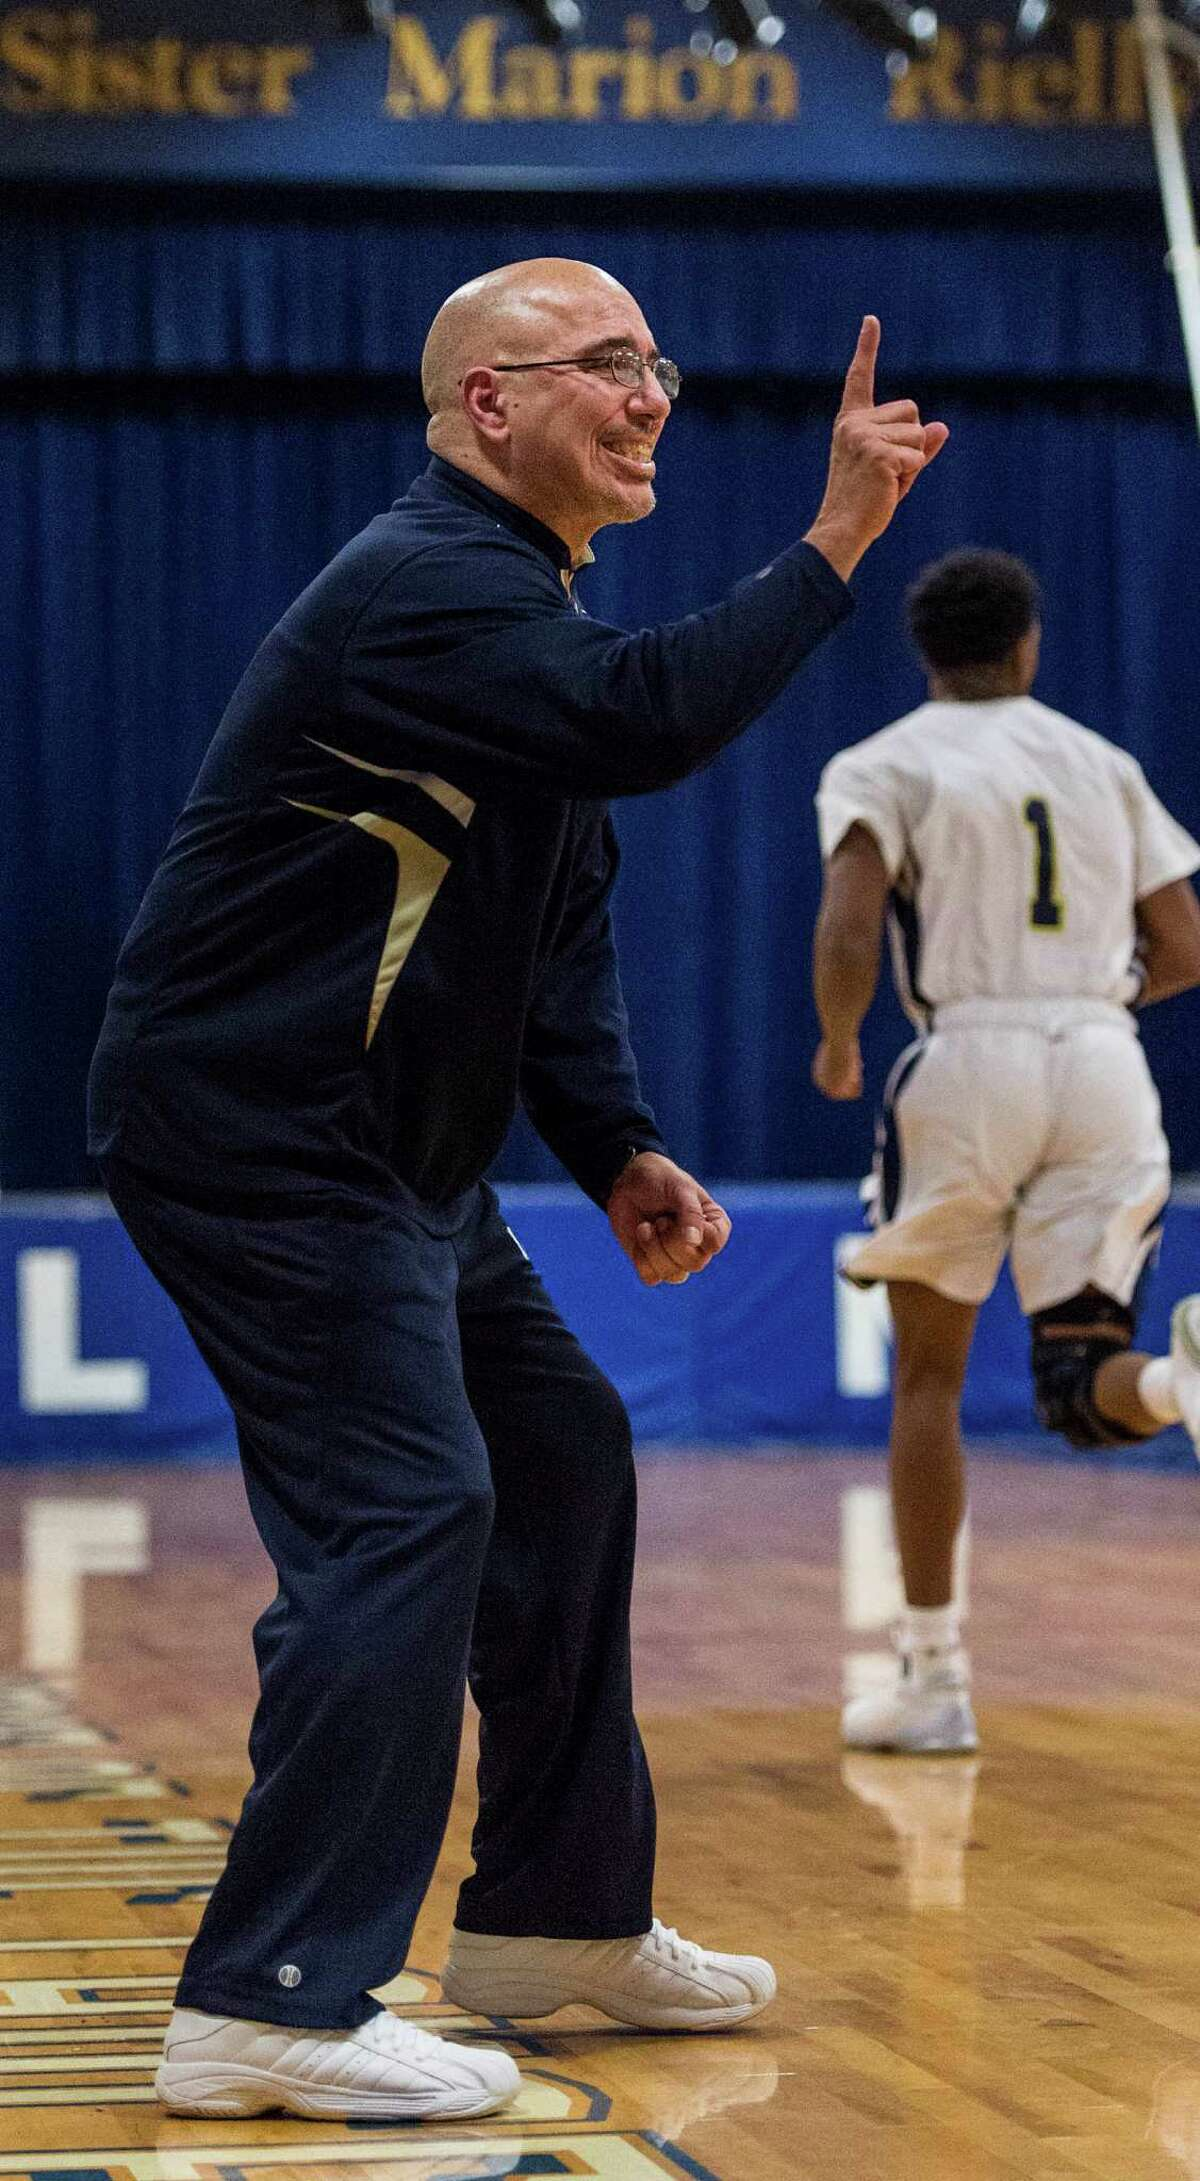 Notre Dame of Fairfield head coach Vin Laczkoski gets his 300th win as his team defeats Pomperaug High School during a boys basketball game played at Notre Dame of Fairfield, Fairfield, CT on Tuesday, February 2, 2016.